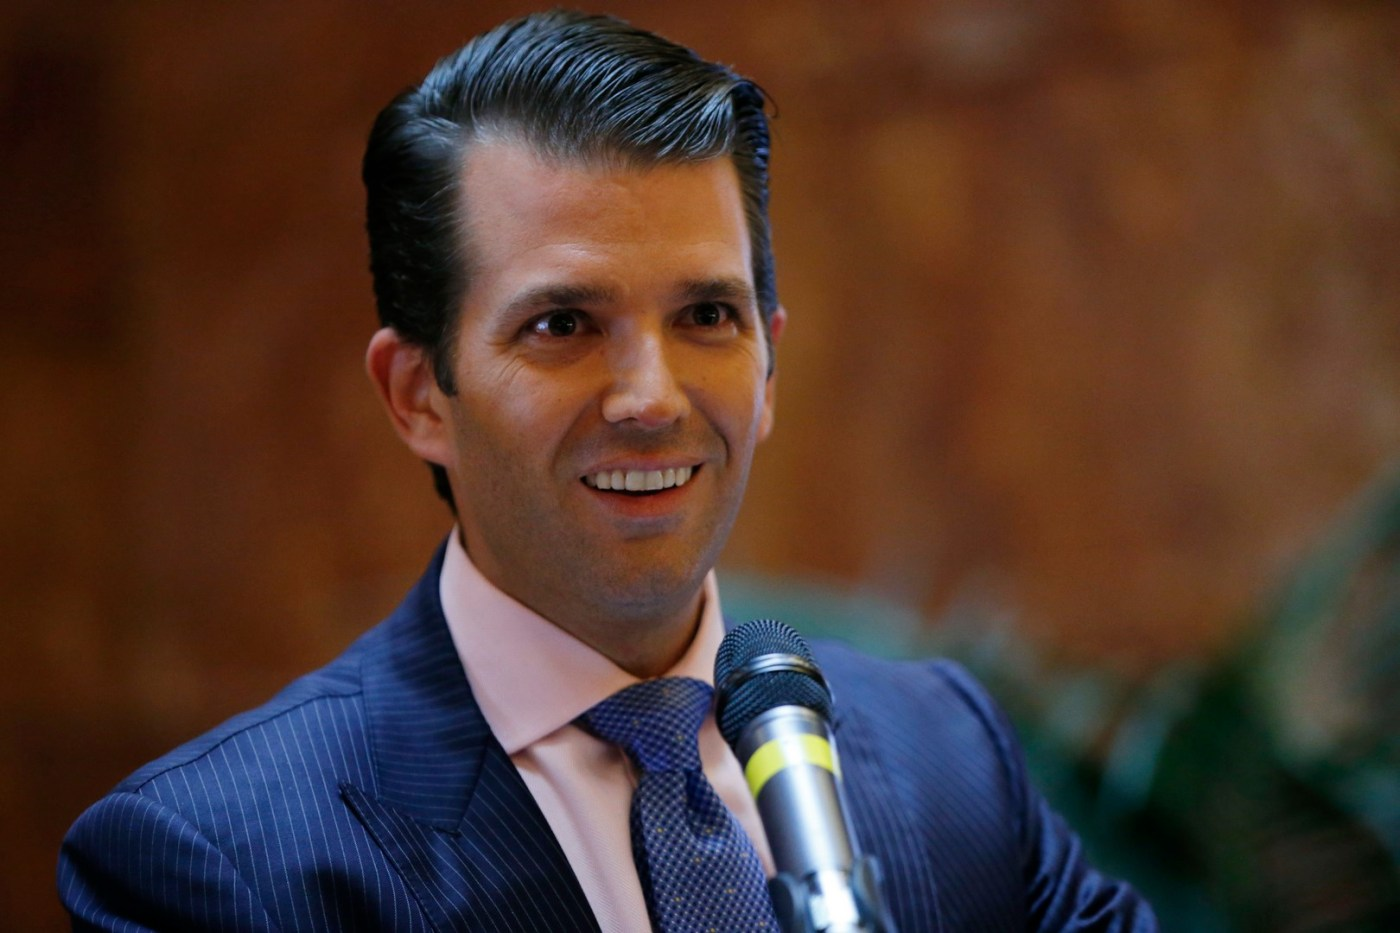 Donald Trump Jr. el hijo mayor de mandatario